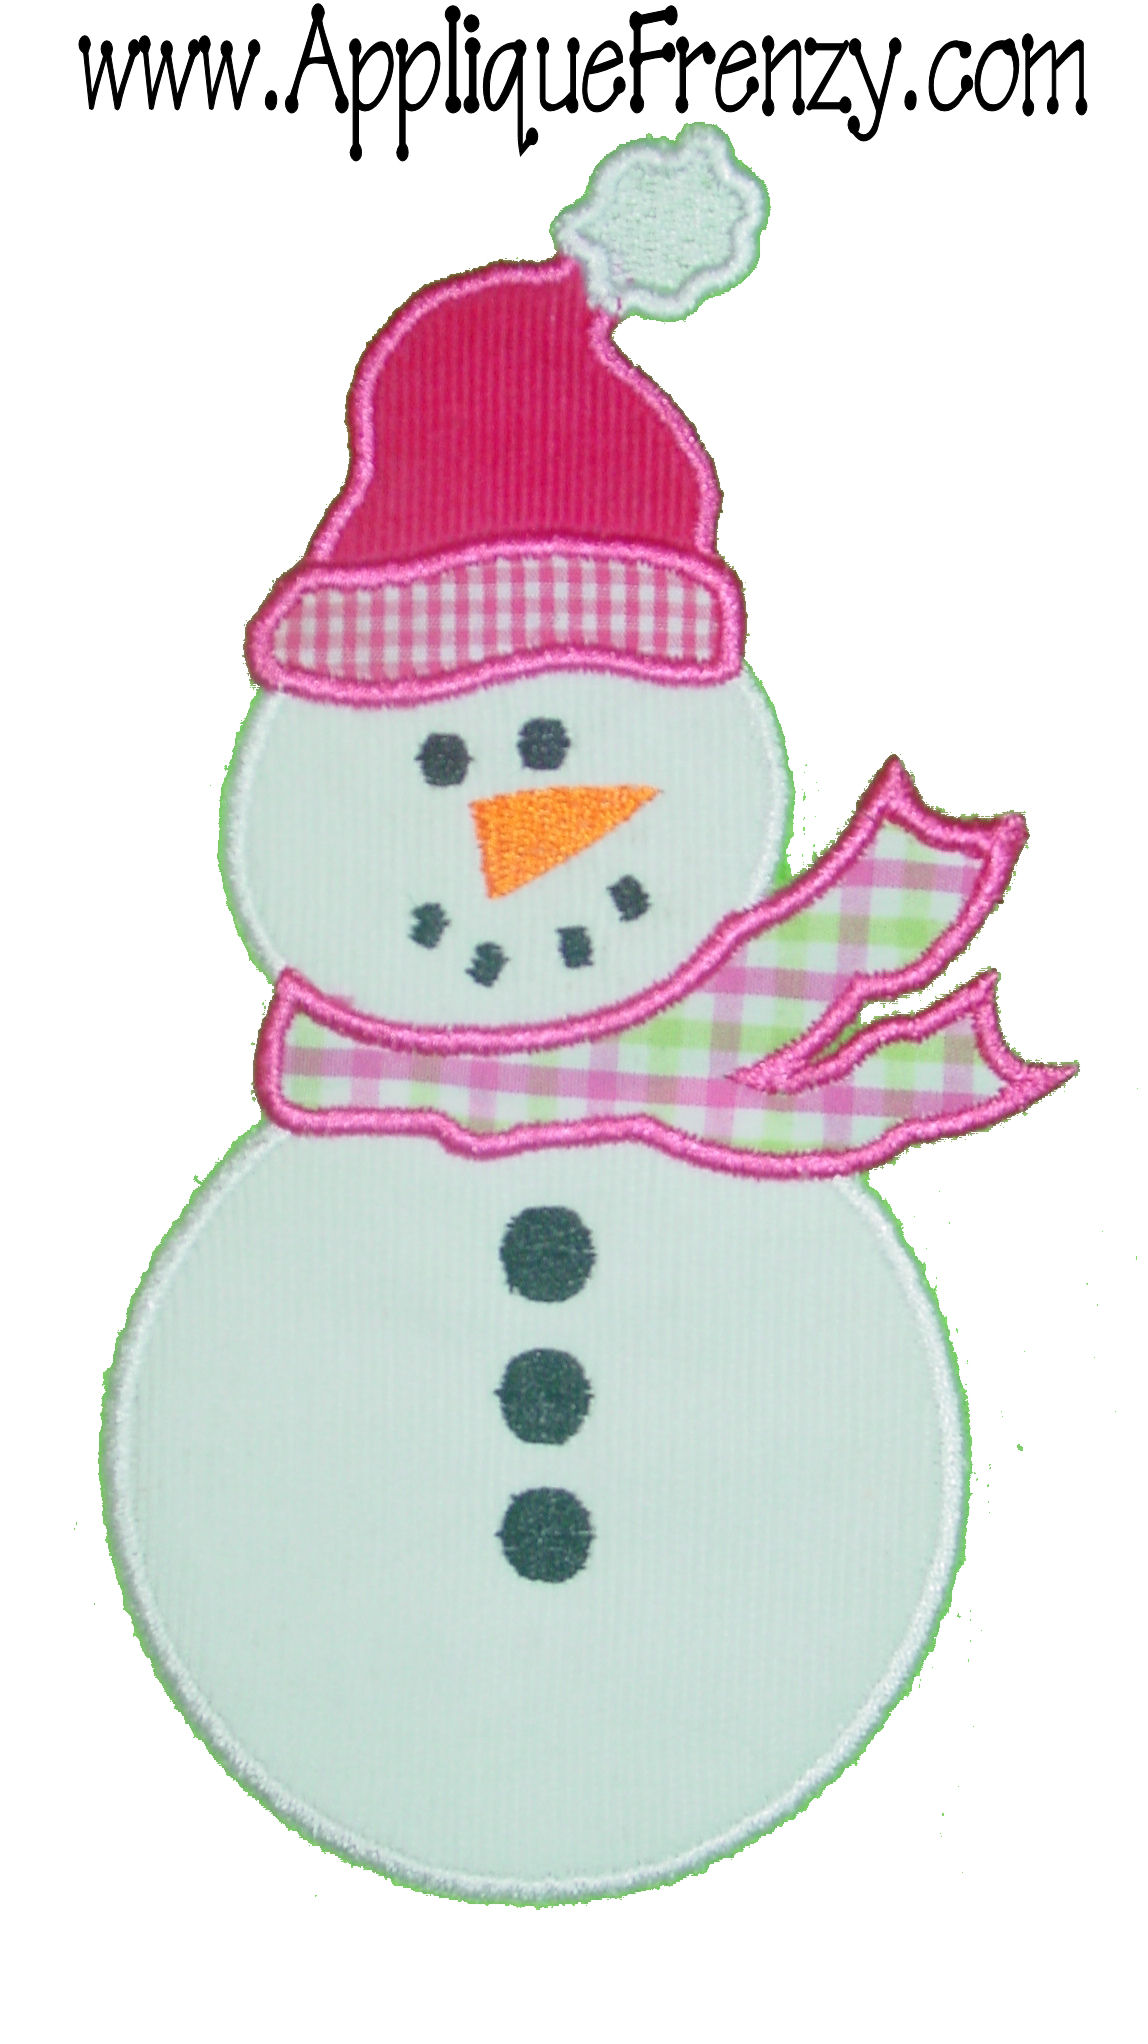 Snowman 2 Applique Design-snowman, chrismtas, frosty, santa,winter, snow